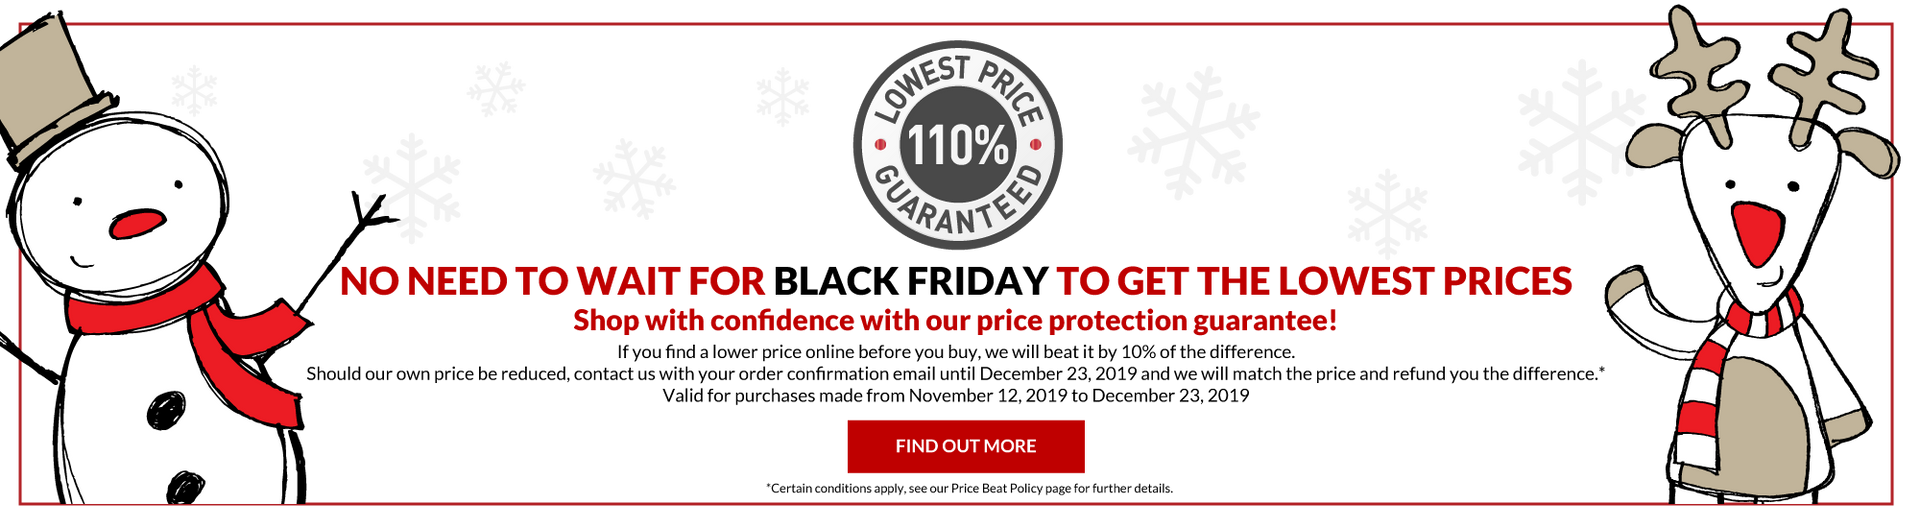 Canada Luggage Depot Lowest Price Guarantee